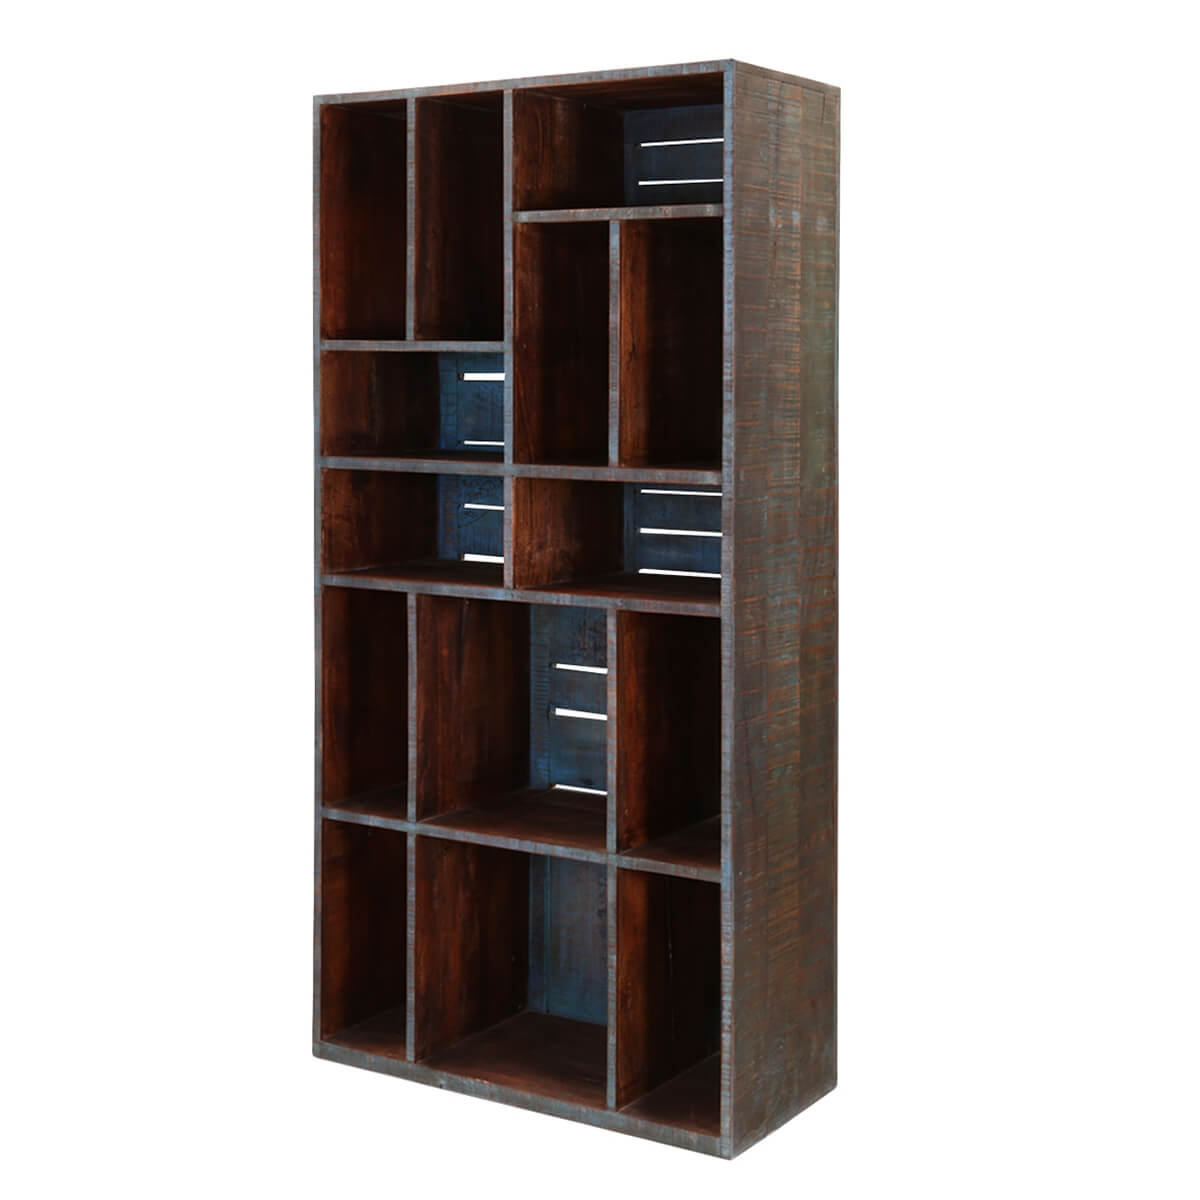 Parkersburg 14 Open Shelf Rustic Reclaimed Wood Bookcase